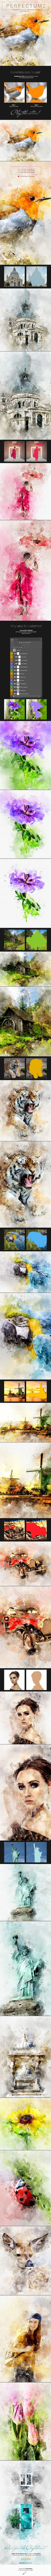 Perfectum 2  Watercolor Artist Photoshop Action — Photoshop ABR #photography #color • Available here → https://graphicriver.net/item/perfectum-2-watercolor-artist-photoshop-action/19501970?ref=pxcr